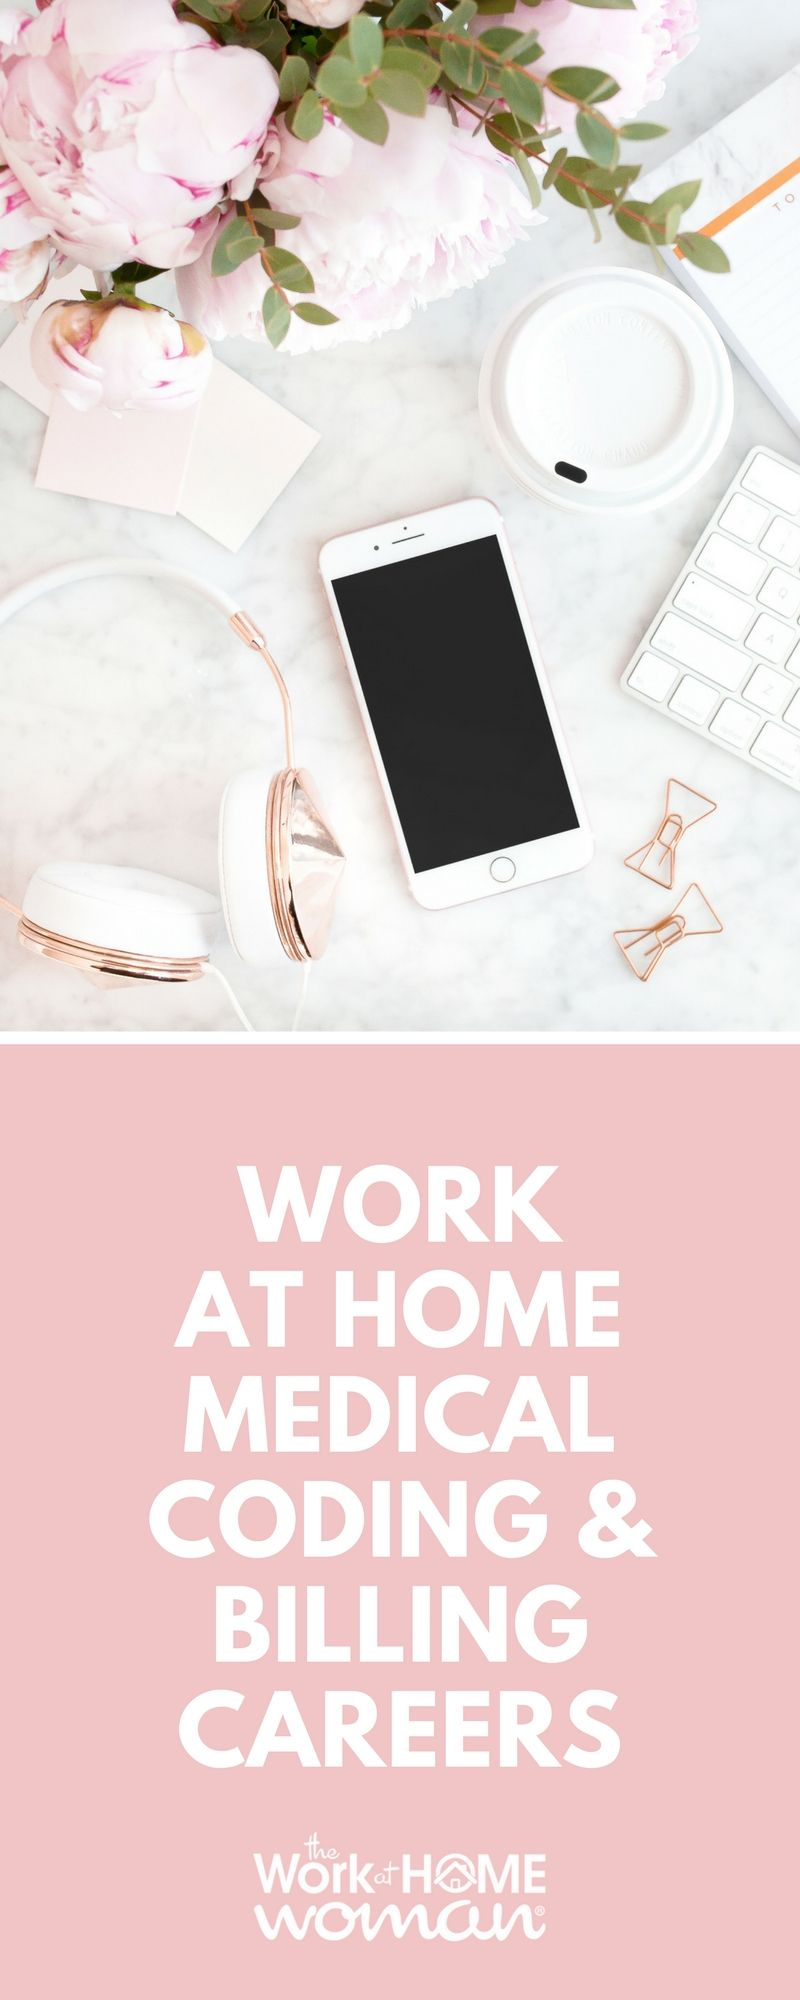 Work At Home Medical Coding And Billing Careers The Work At Home